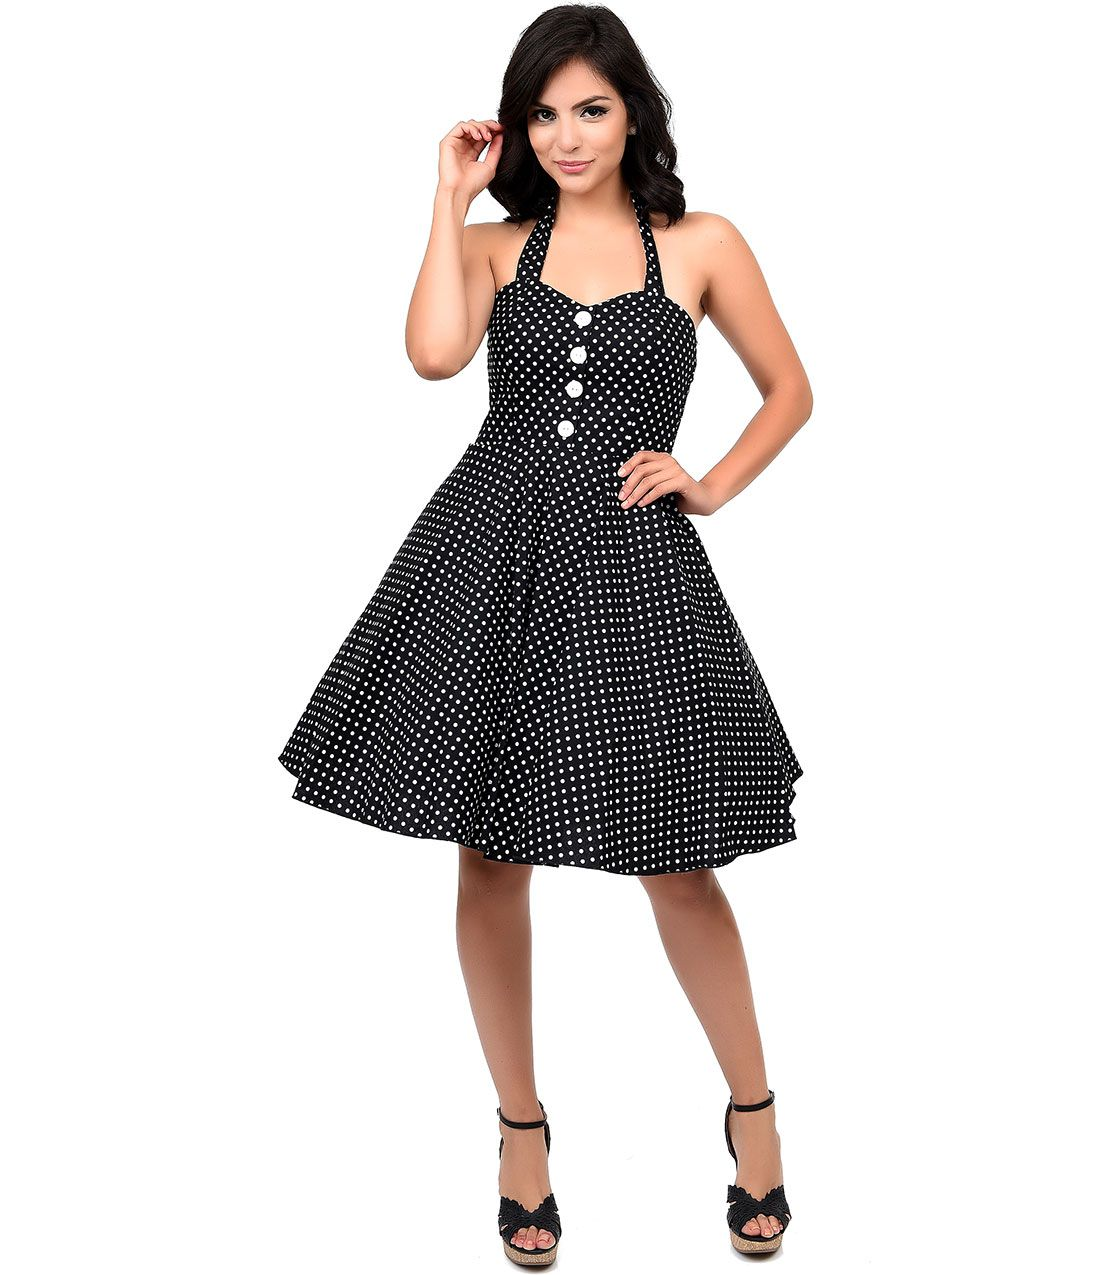 retro flare dress photoshoot - Google Search